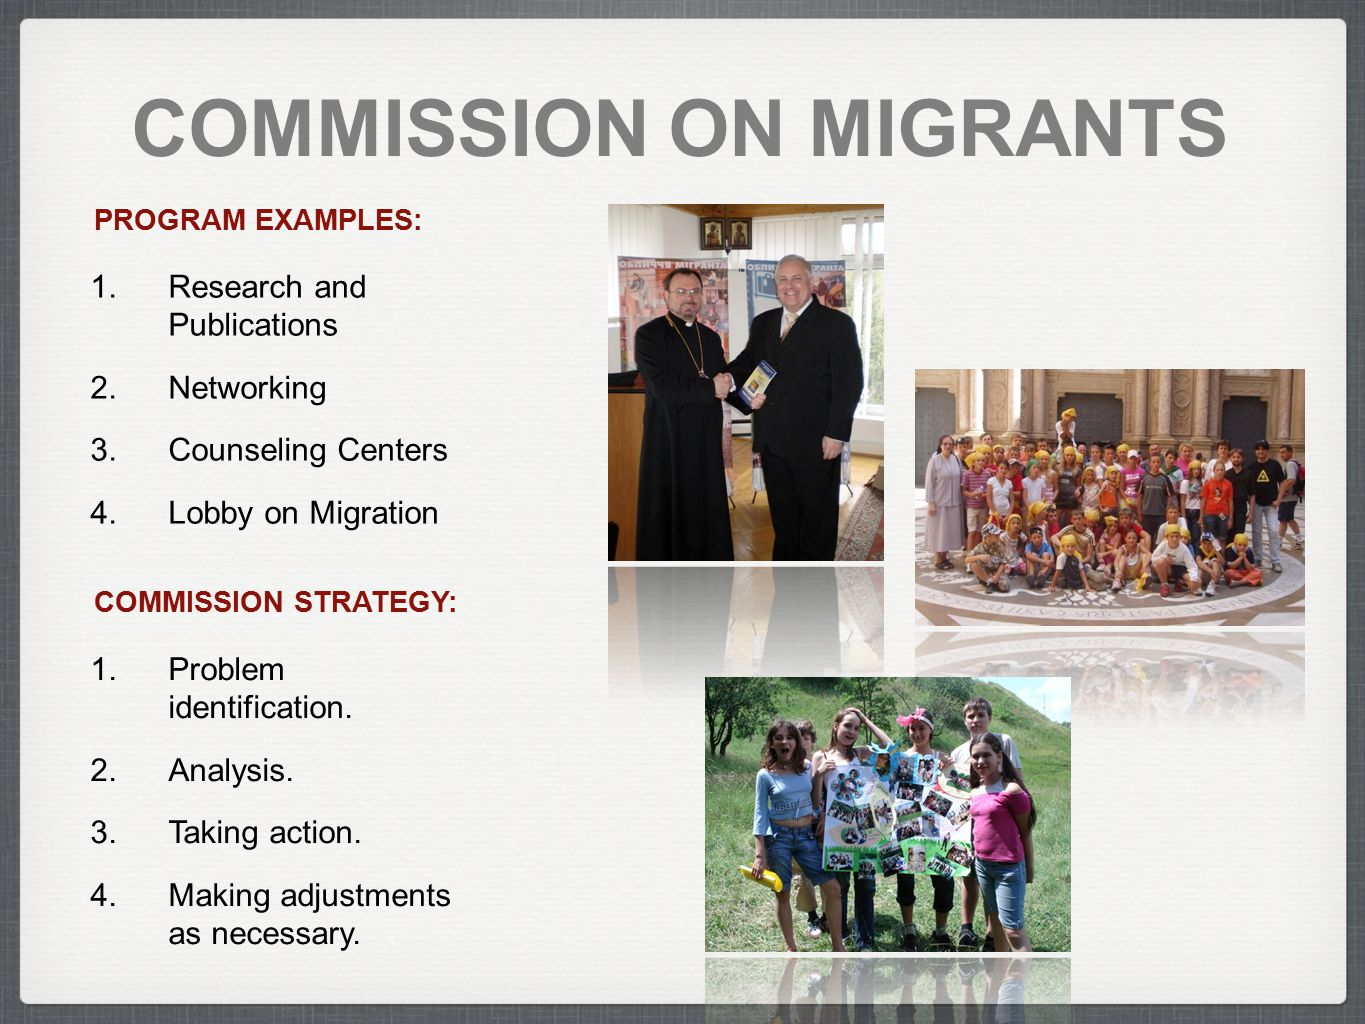 COMMISSION ON MIGRANTS COMMISSION STRATEGY: 1.Problem identification. 2.Analysis. 3.Taking action. 4.Making adjustments as necessary. PROGRAM EXAMPLES